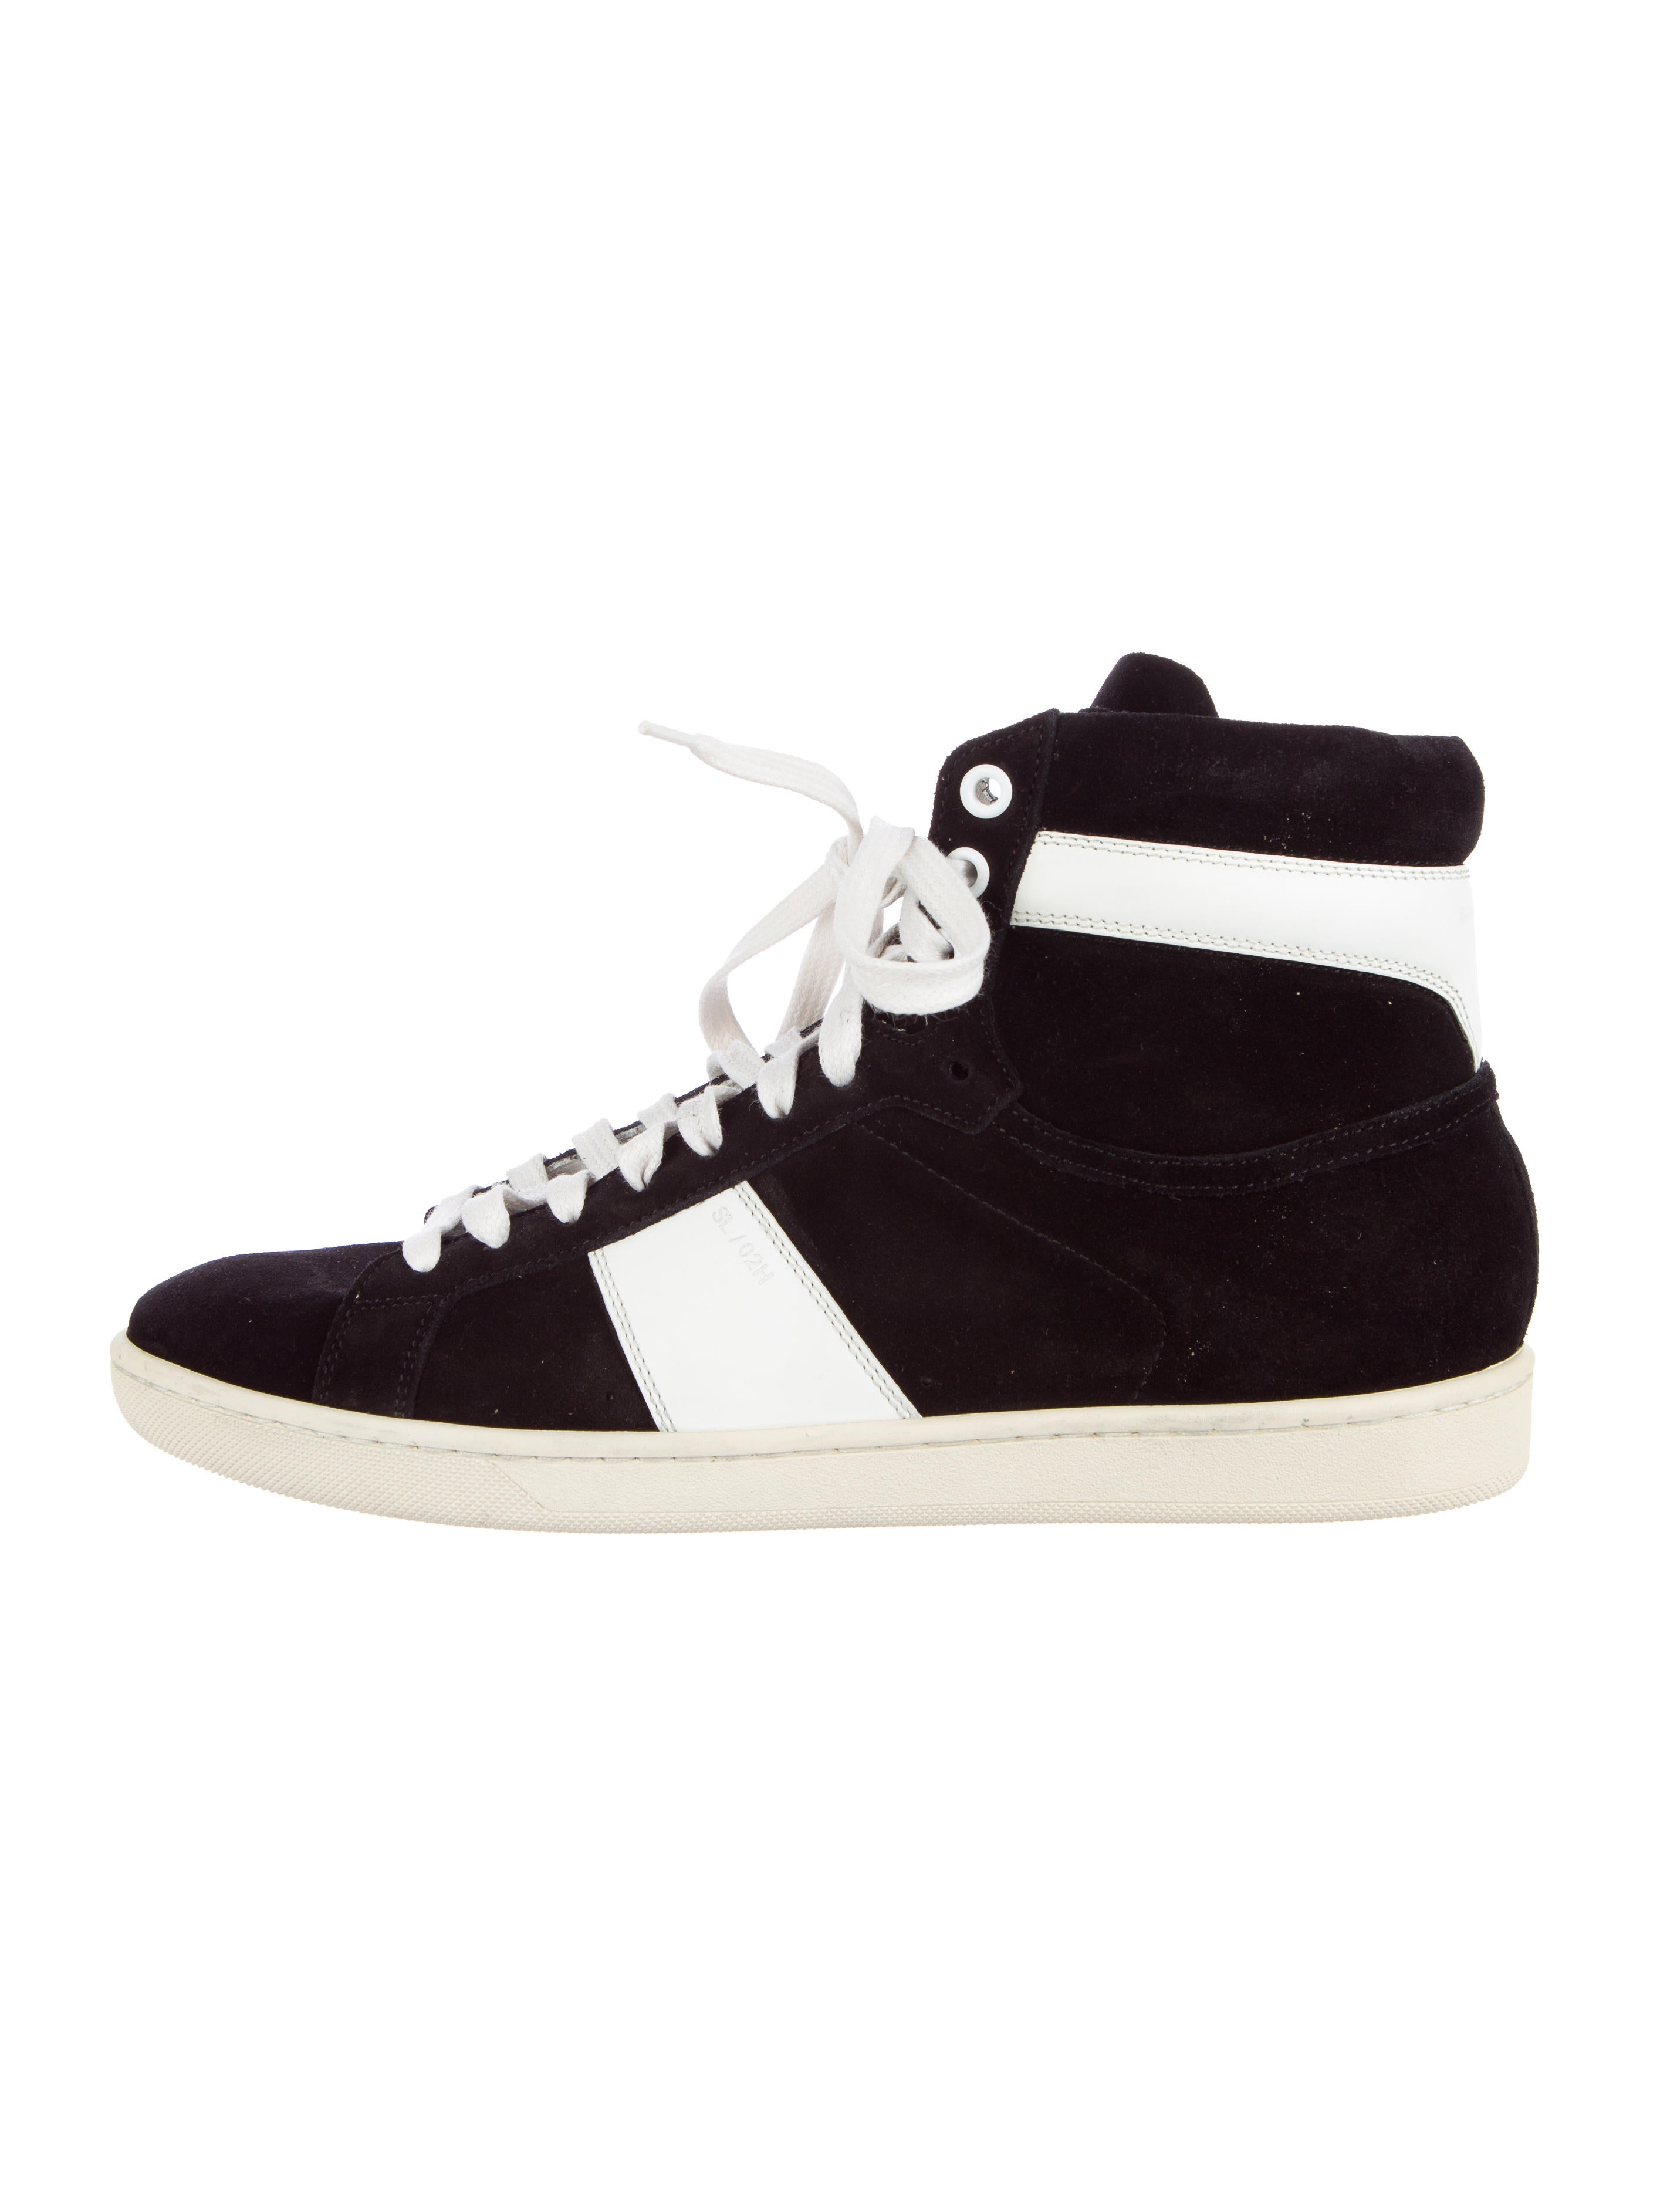 saint laurent sl 02h wolly sneakers mens shoes snt23575 the realreal. Black Bedroom Furniture Sets. Home Design Ideas